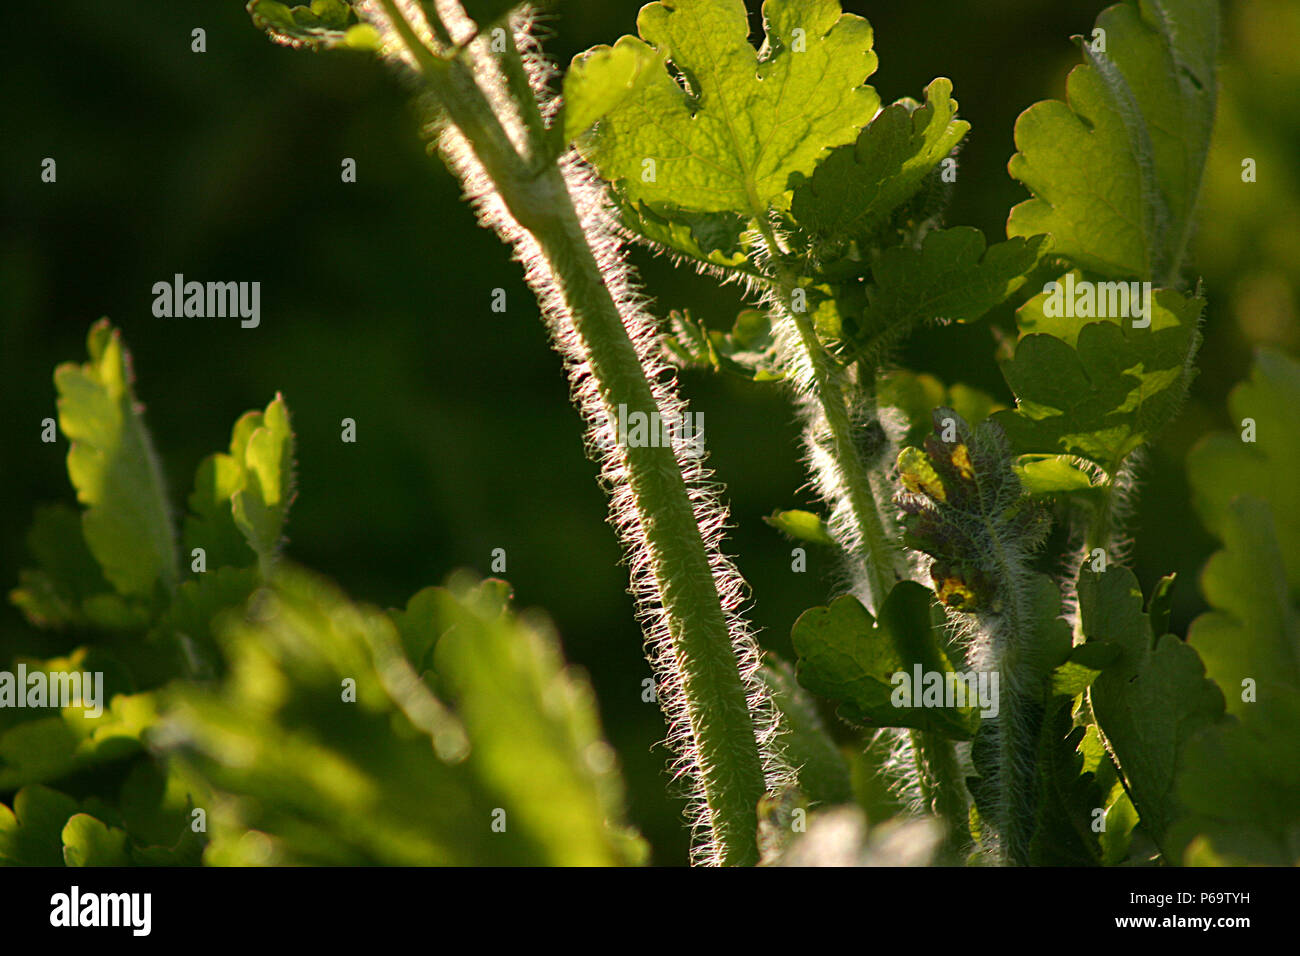 Chelidonium majus (Greater Celandine). Close up of stem and leaves Stock Photo